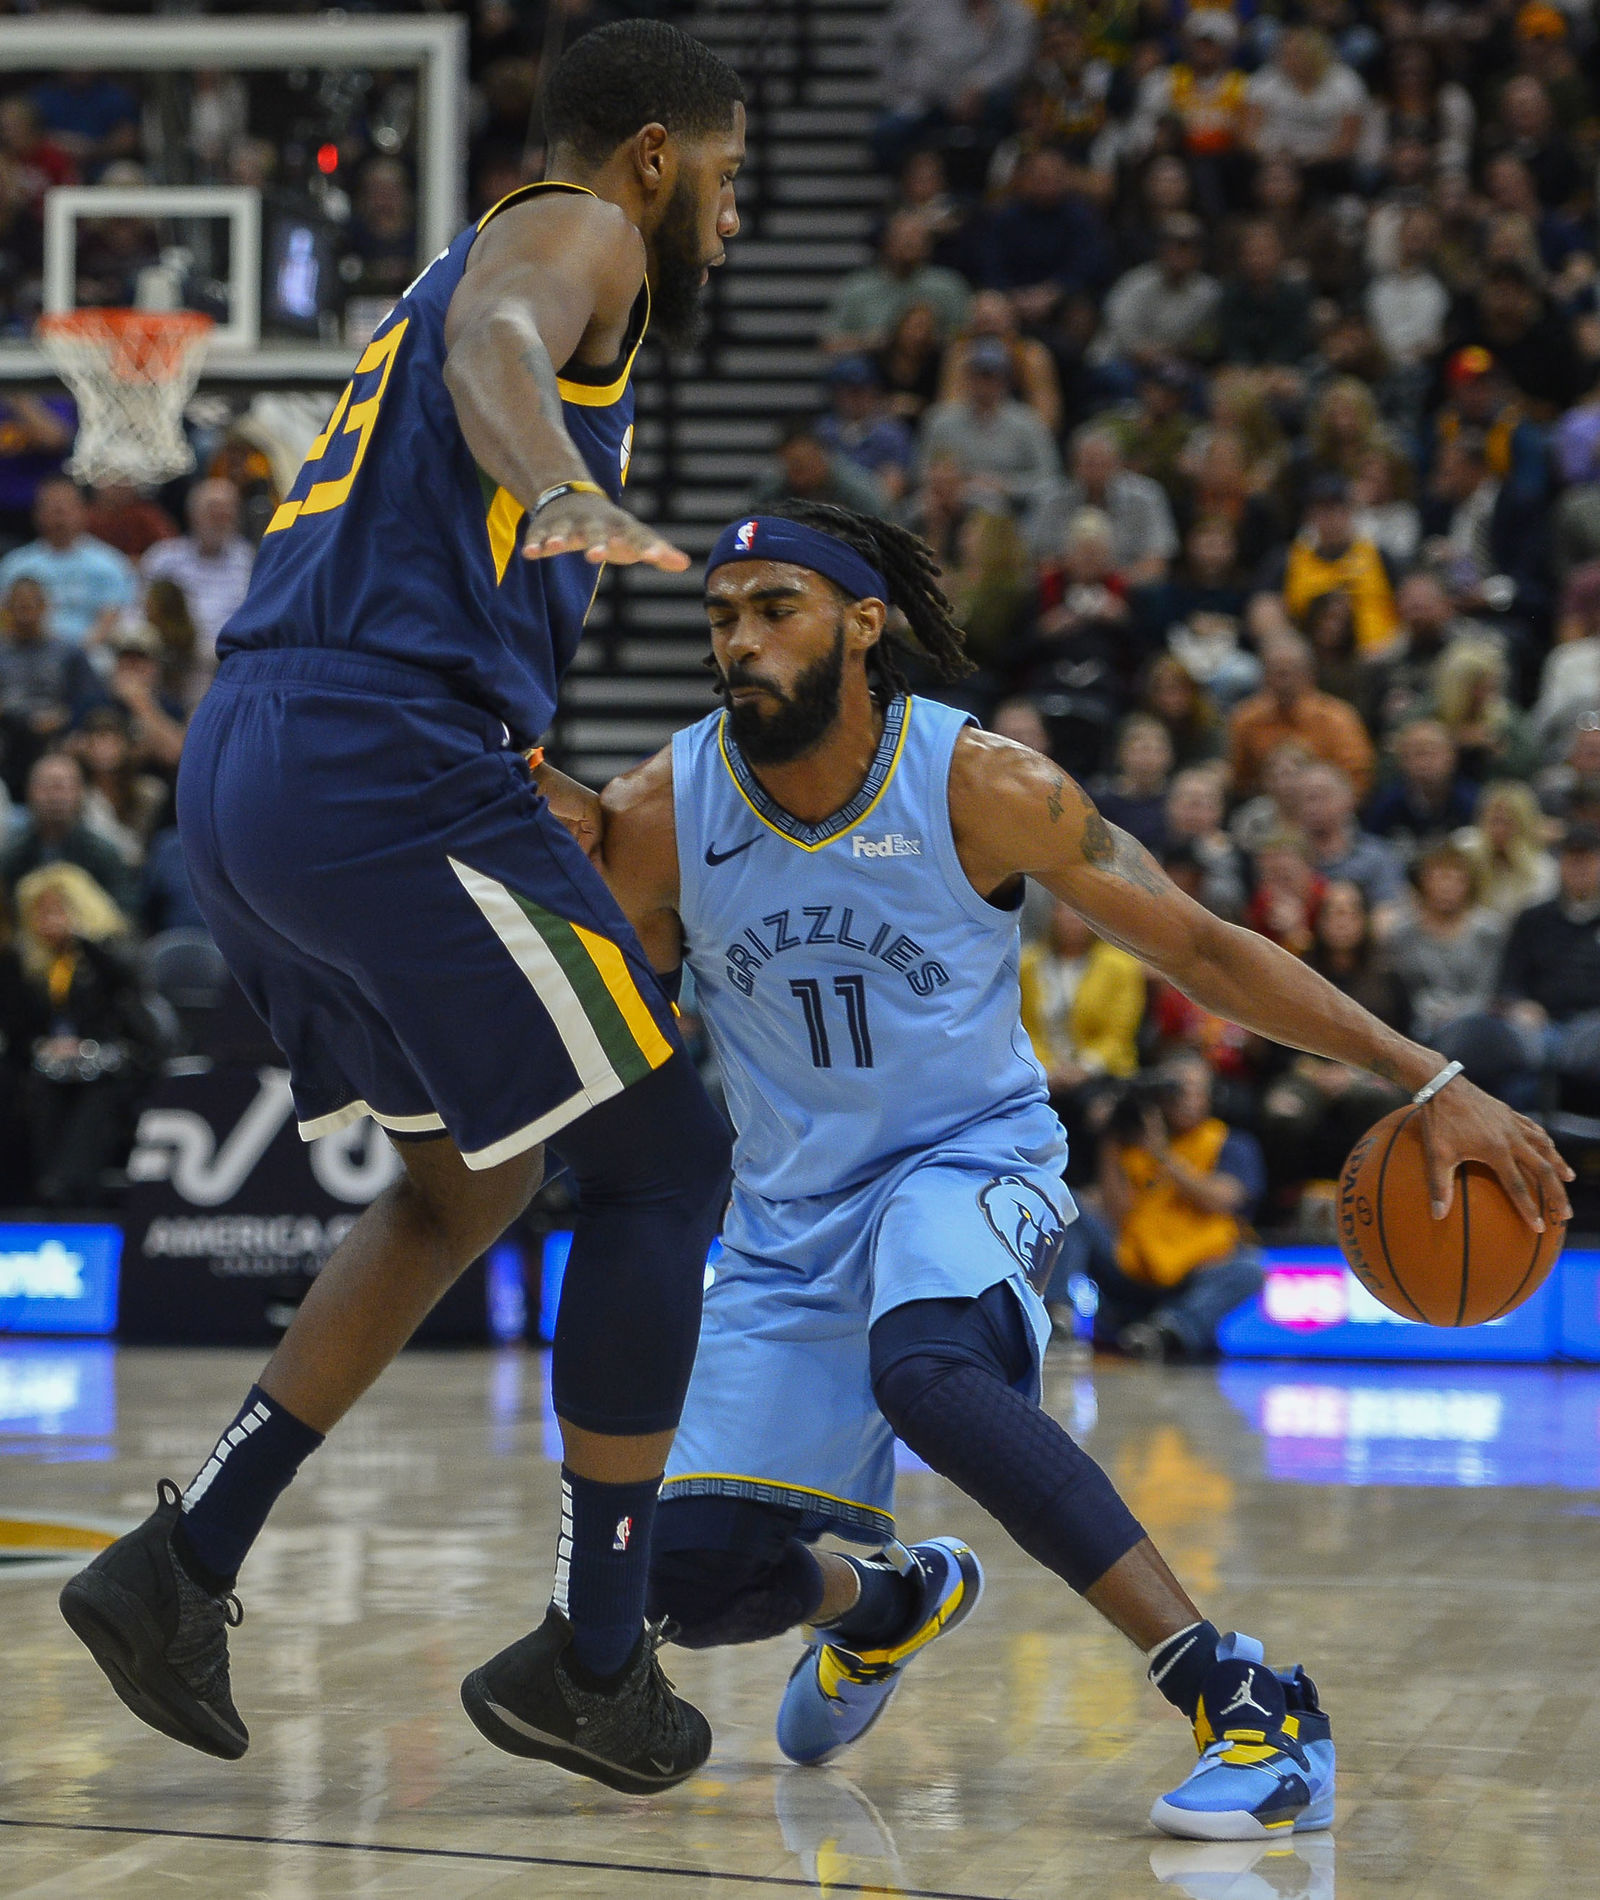 Memphis Grizzlies guard Mike Conley (11) attempts to drive around Utah Jazz forward Royce O'Neale (23) during the first half of an NBA basketball game Friday, Nov. 2, 2018, in Salt Lake City. (AP Photo/Alex Goodlett)